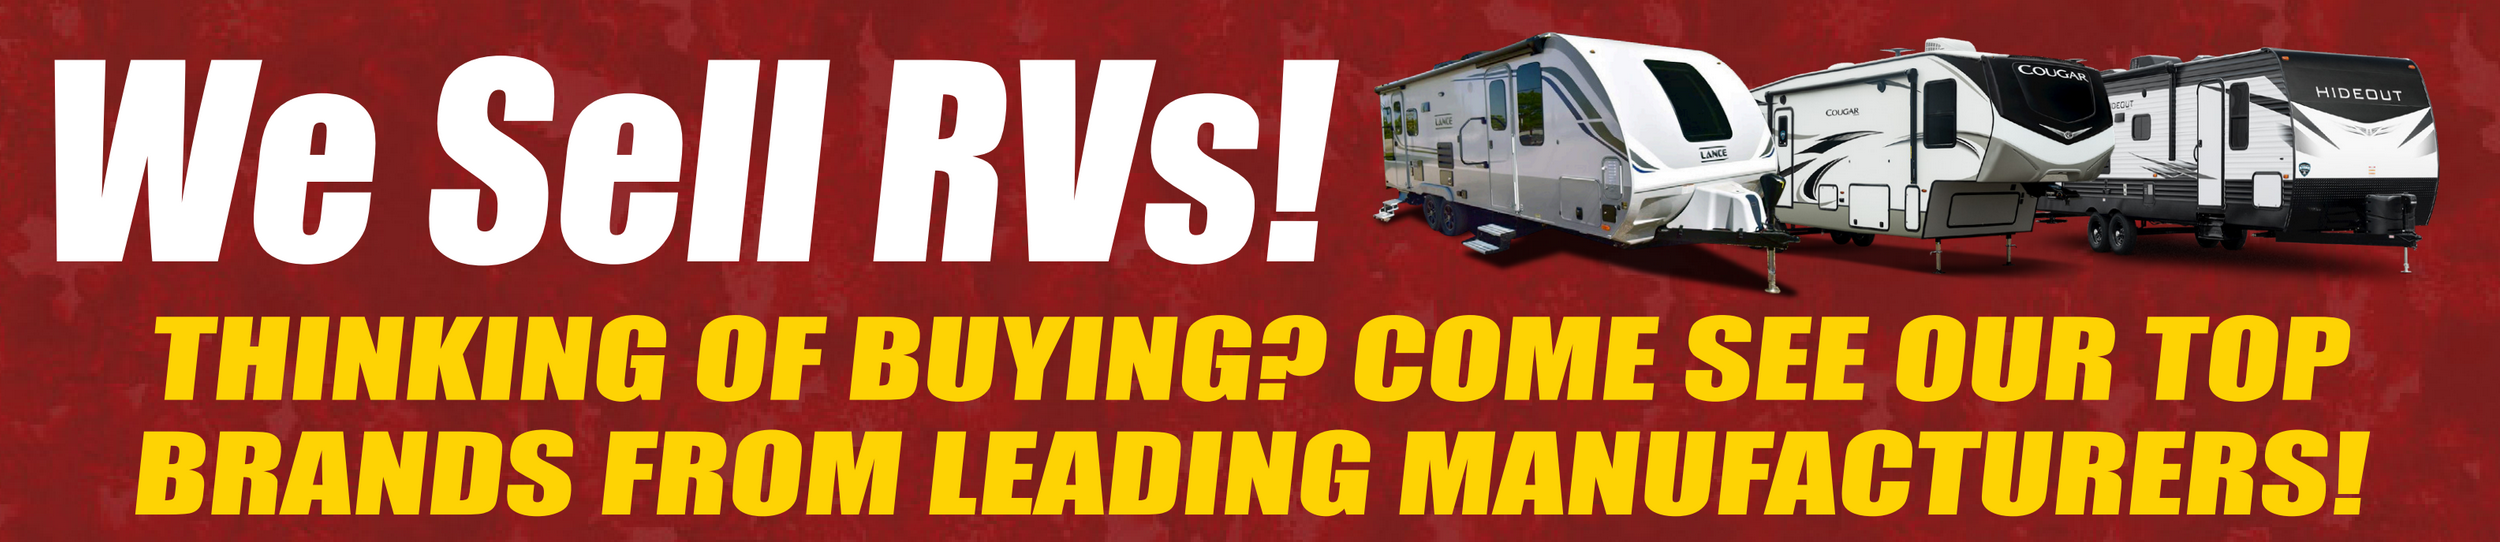 We sell RVs